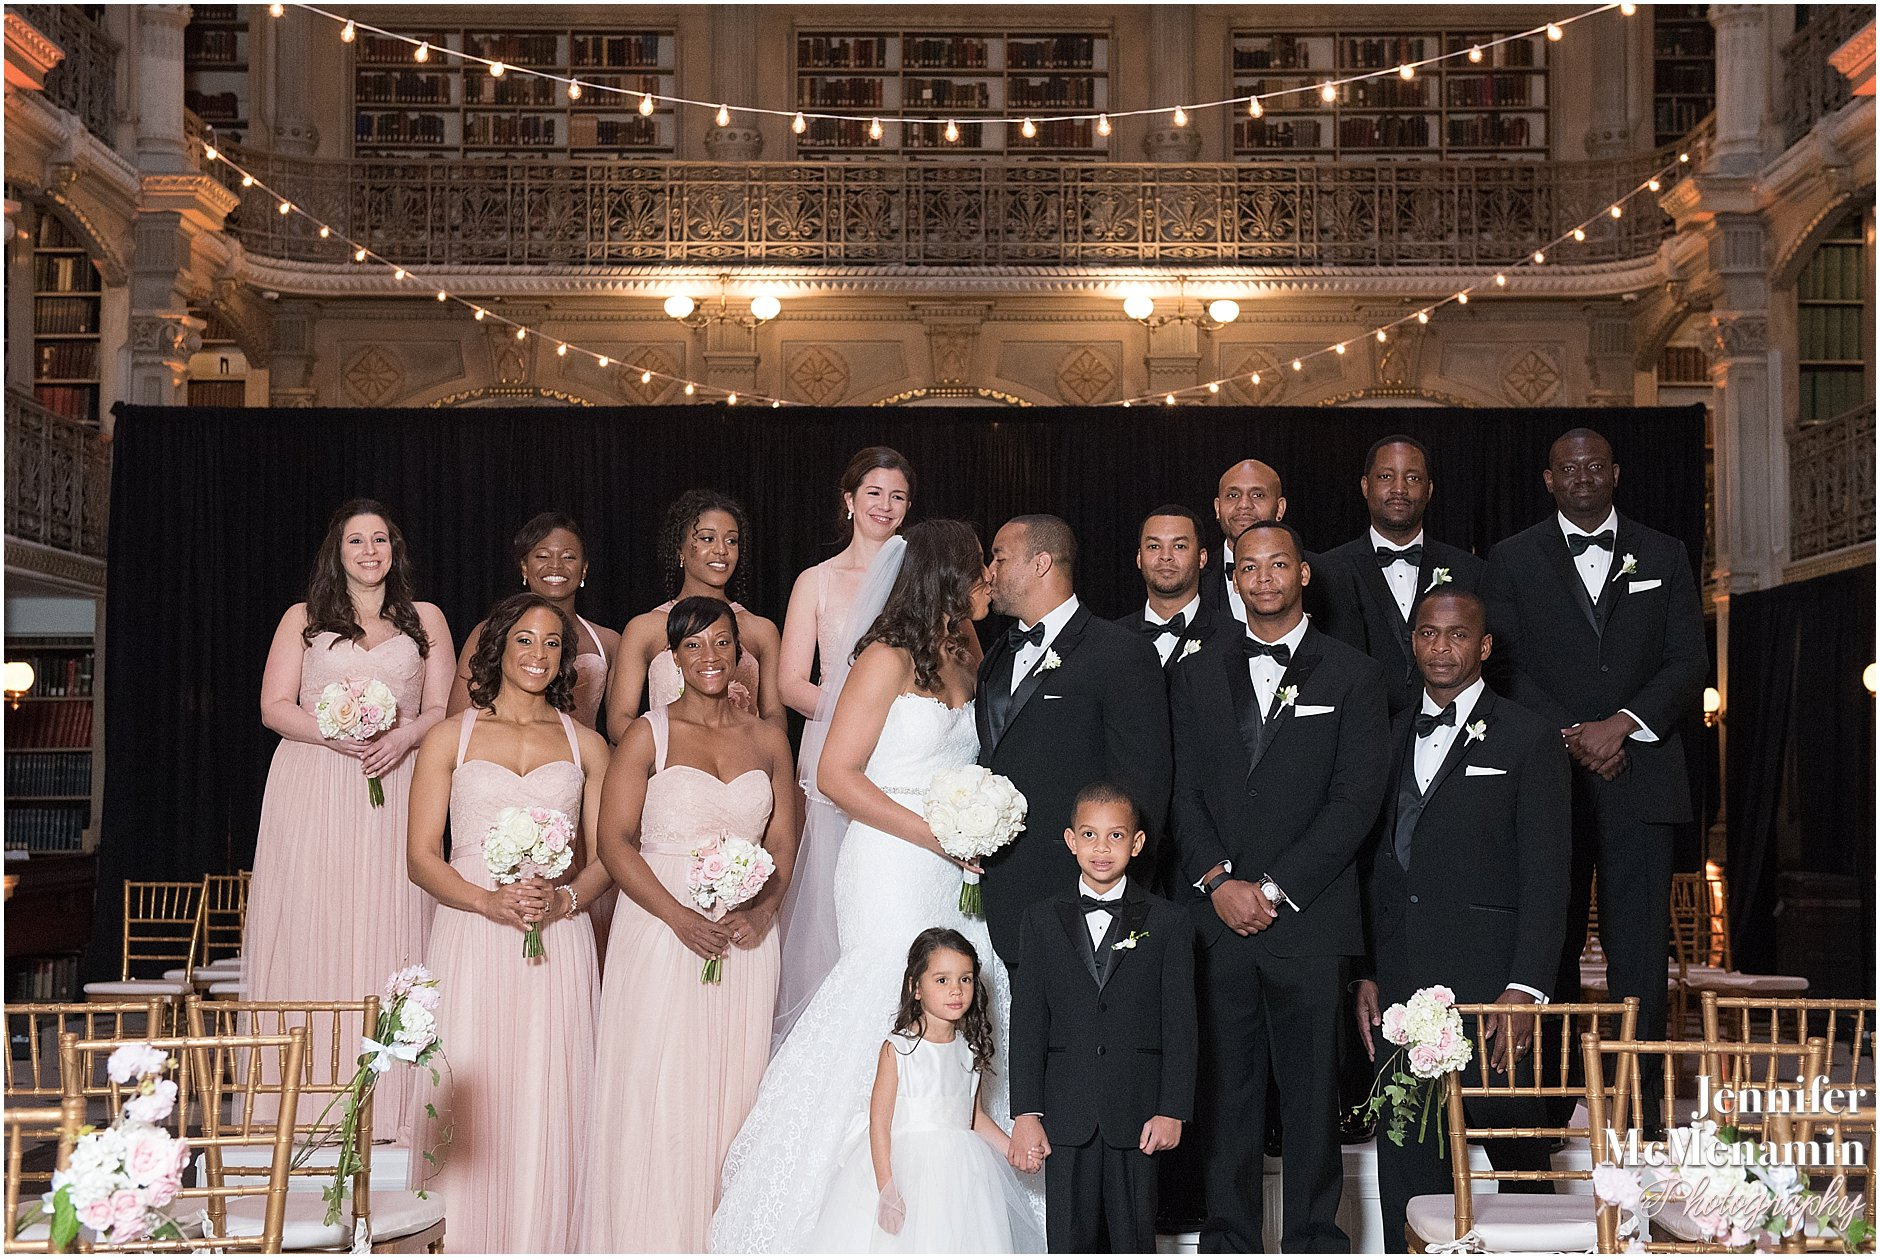 054-Peabody-Library-Wedding_WilsonPatterson_02152-0444_Jennifer-McMenamin-Photography